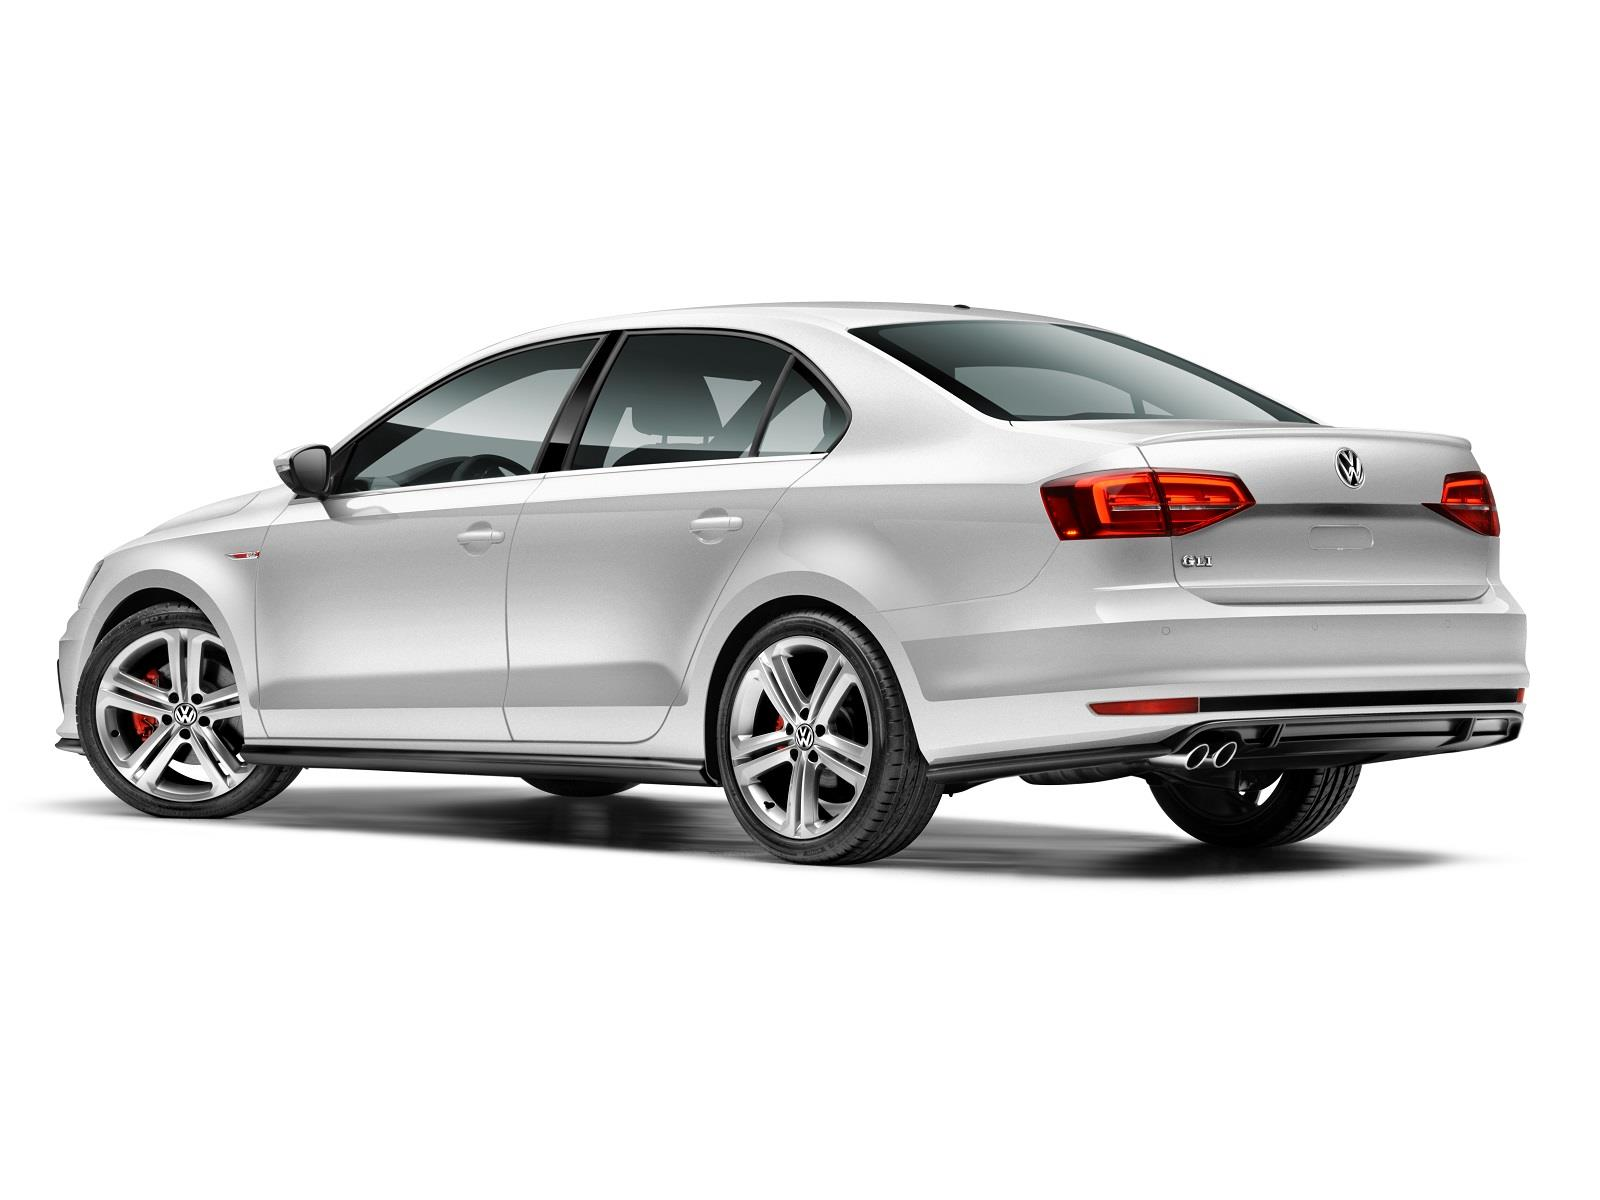 volkswagen jetta gli 2016 llega a m xico desde 403 700 pesos. Black Bedroom Furniture Sets. Home Design Ideas